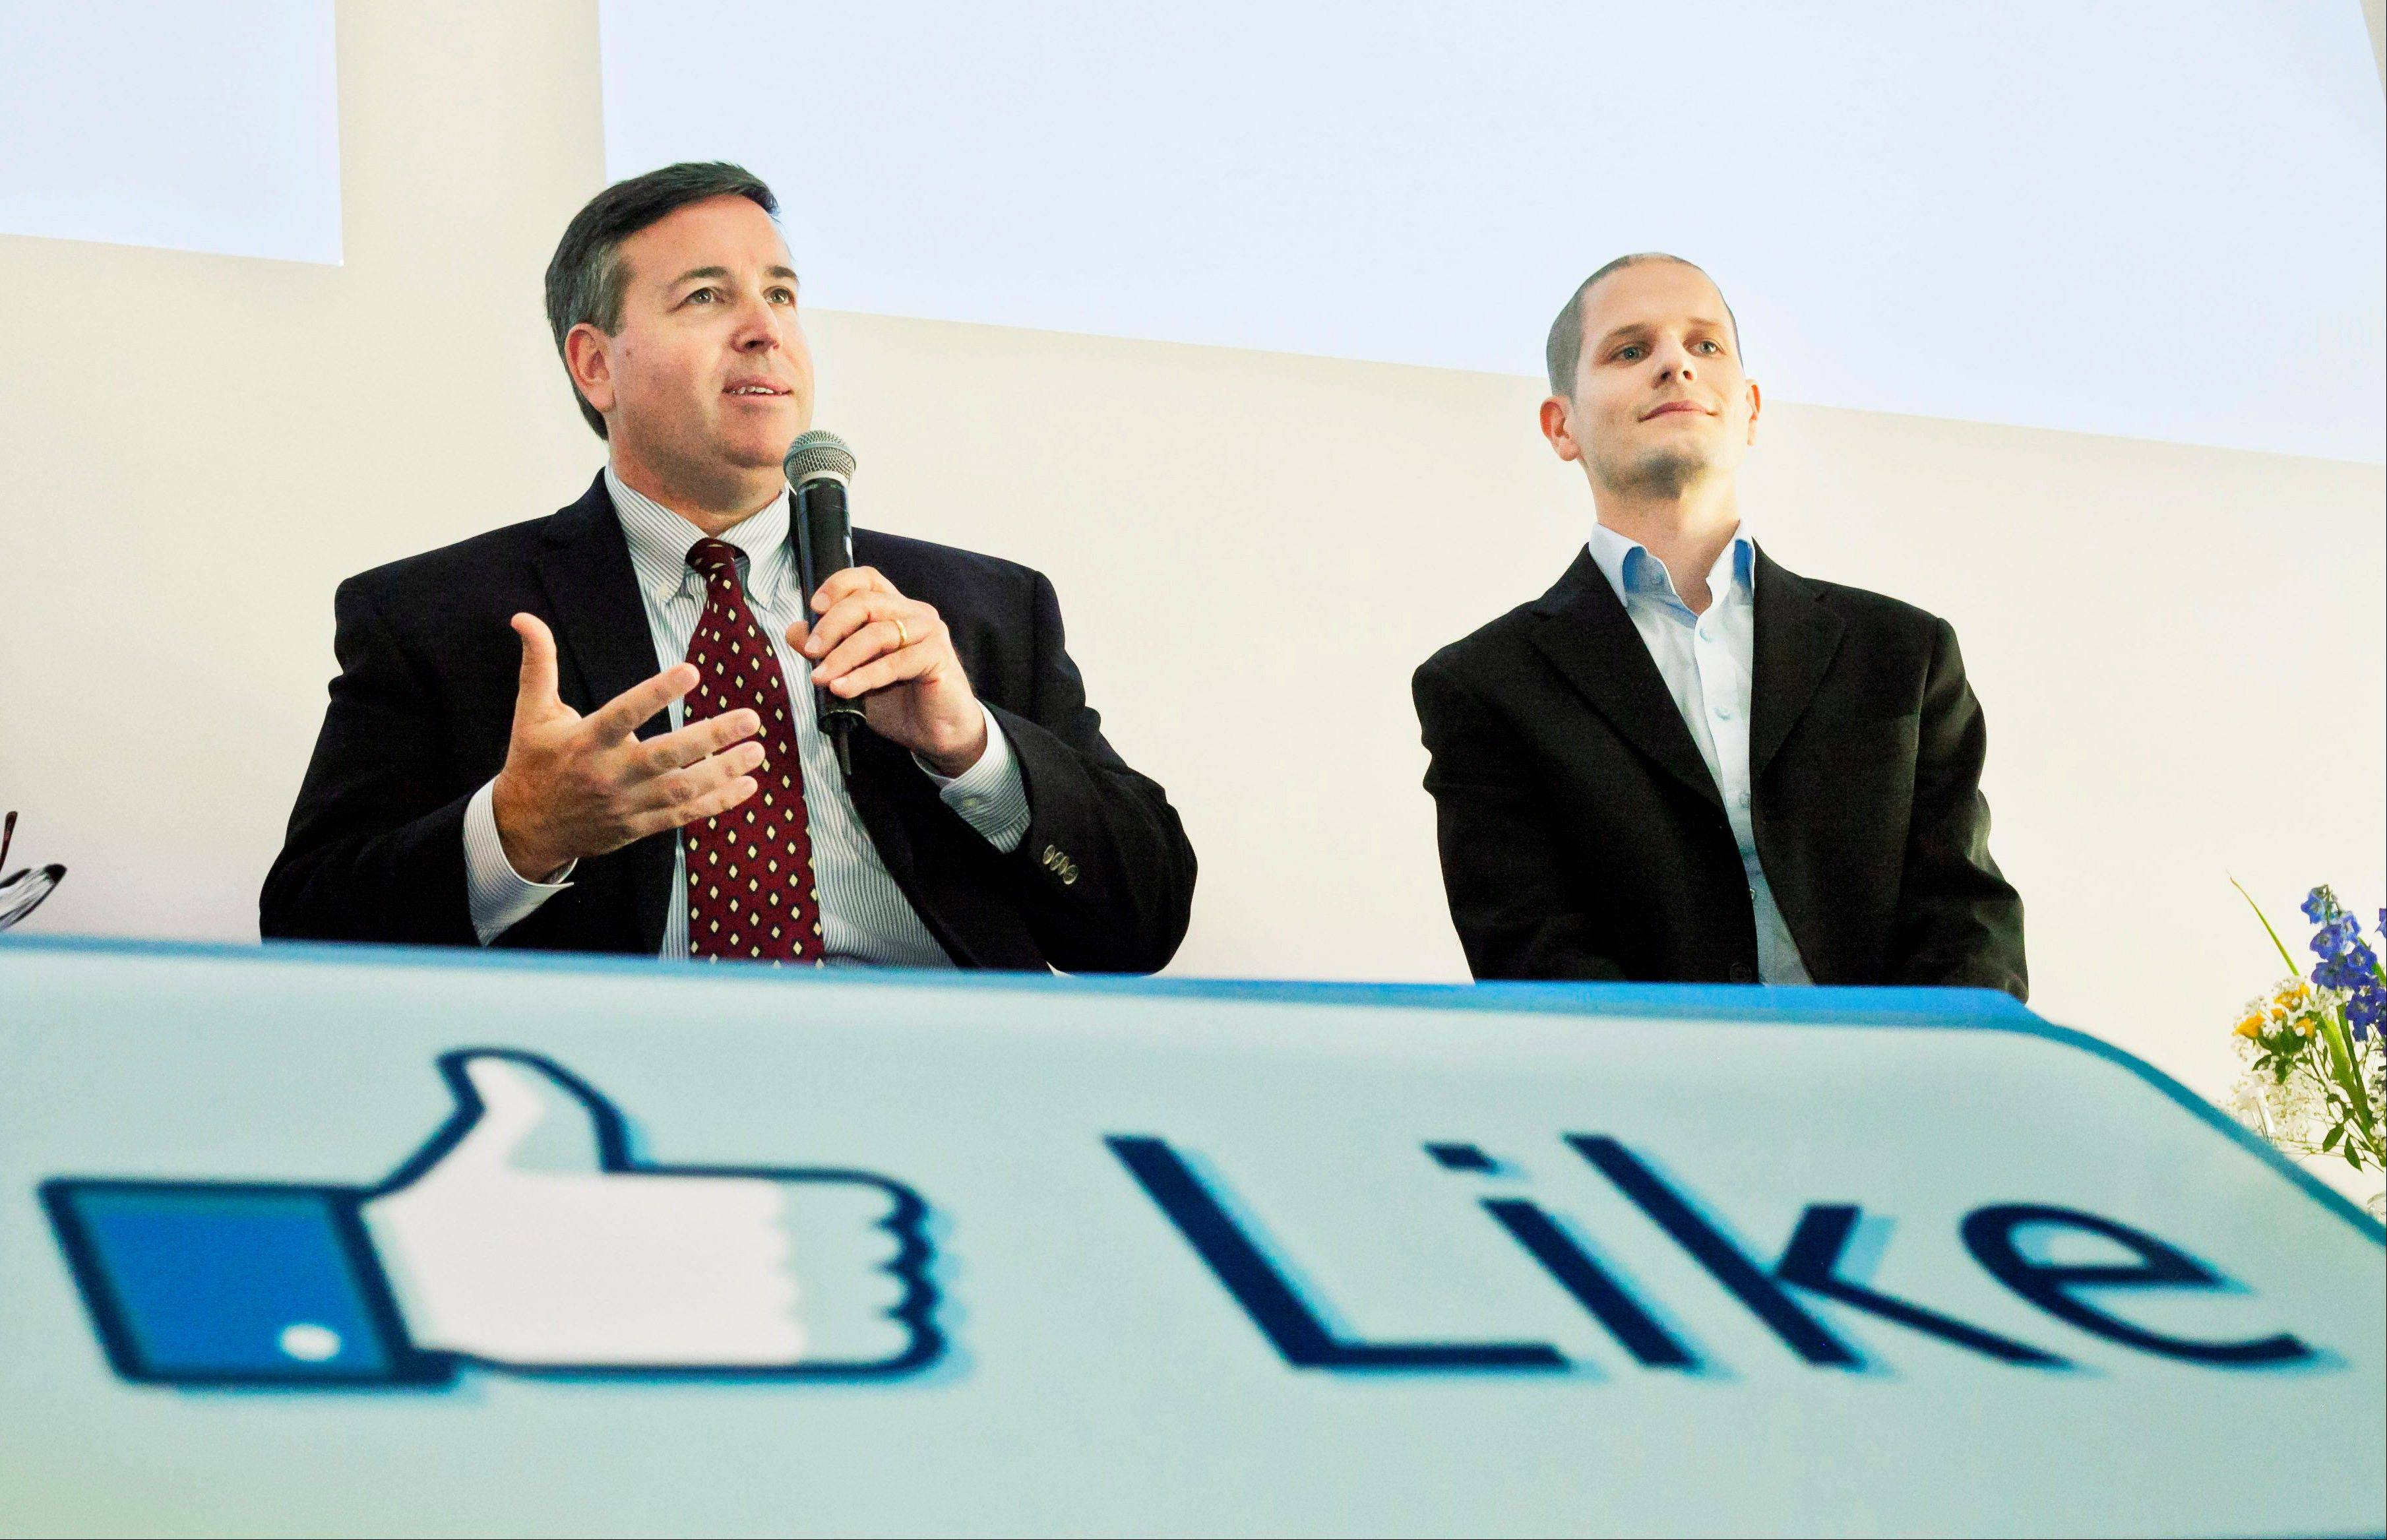 ASSOCIATED PRESSTom Furlong, Facebook's vice president of Site Operations, left, and Joel Kjellgren, Data Centre manager, speak at a news conference at Facebook's new server farm in Lulea, Sweden, Wednesday. Facebook on Wednesday started processing data through its first server farm outside the United States, on the edge of the Arctic Circle in Sweden.